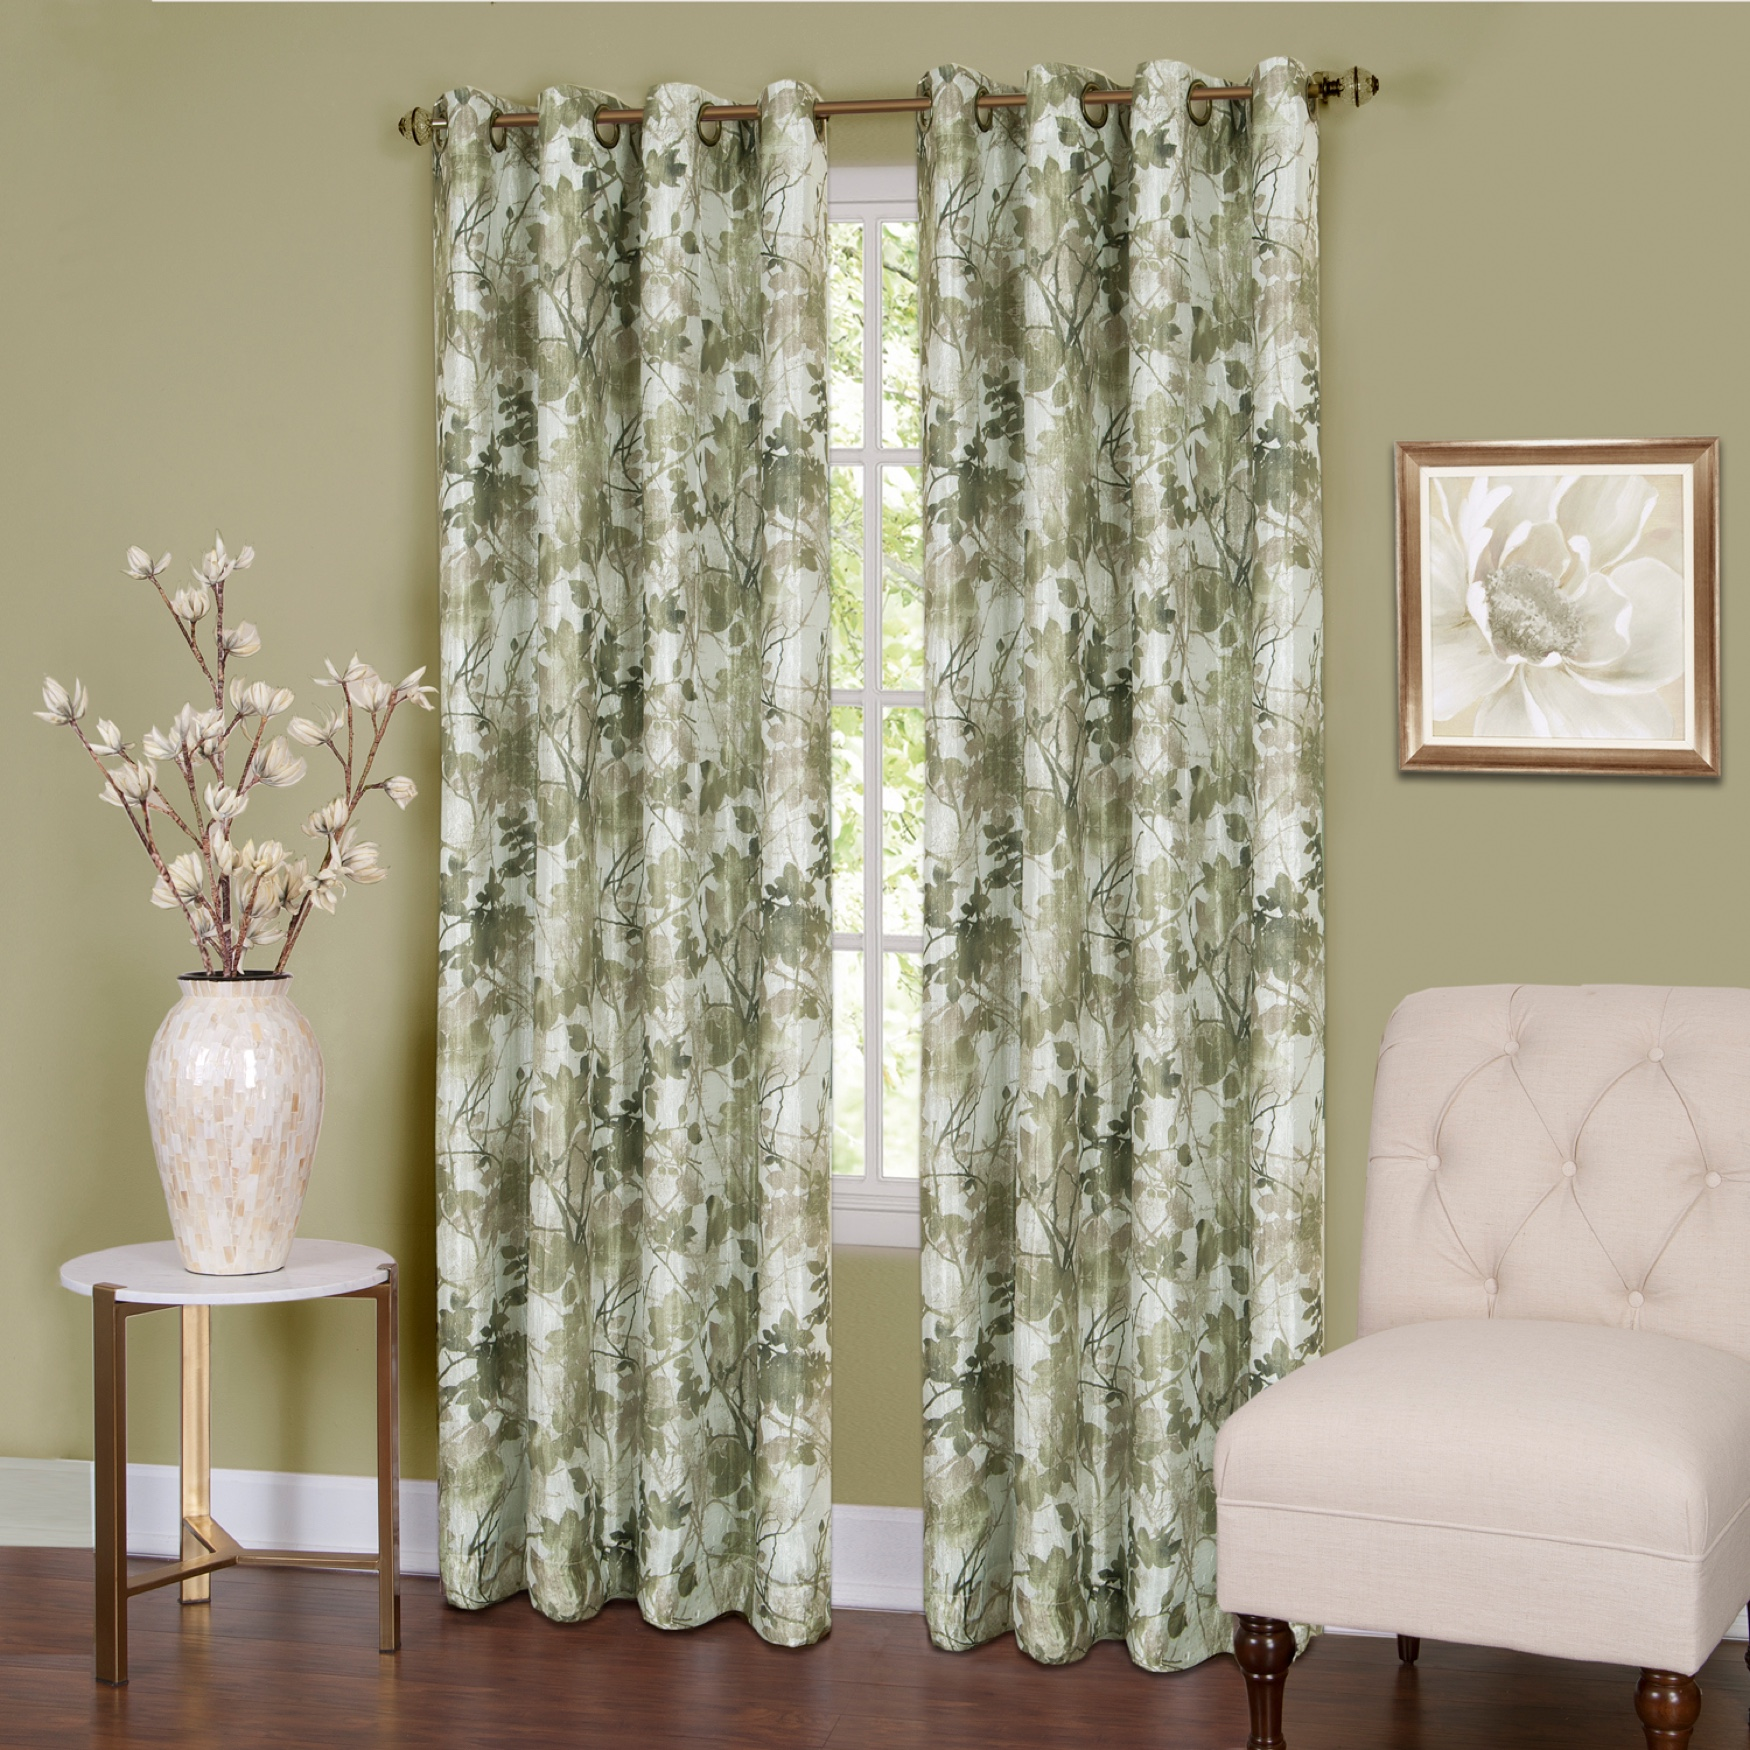 Tranquil Lined Grommet Window Curtain Panel,